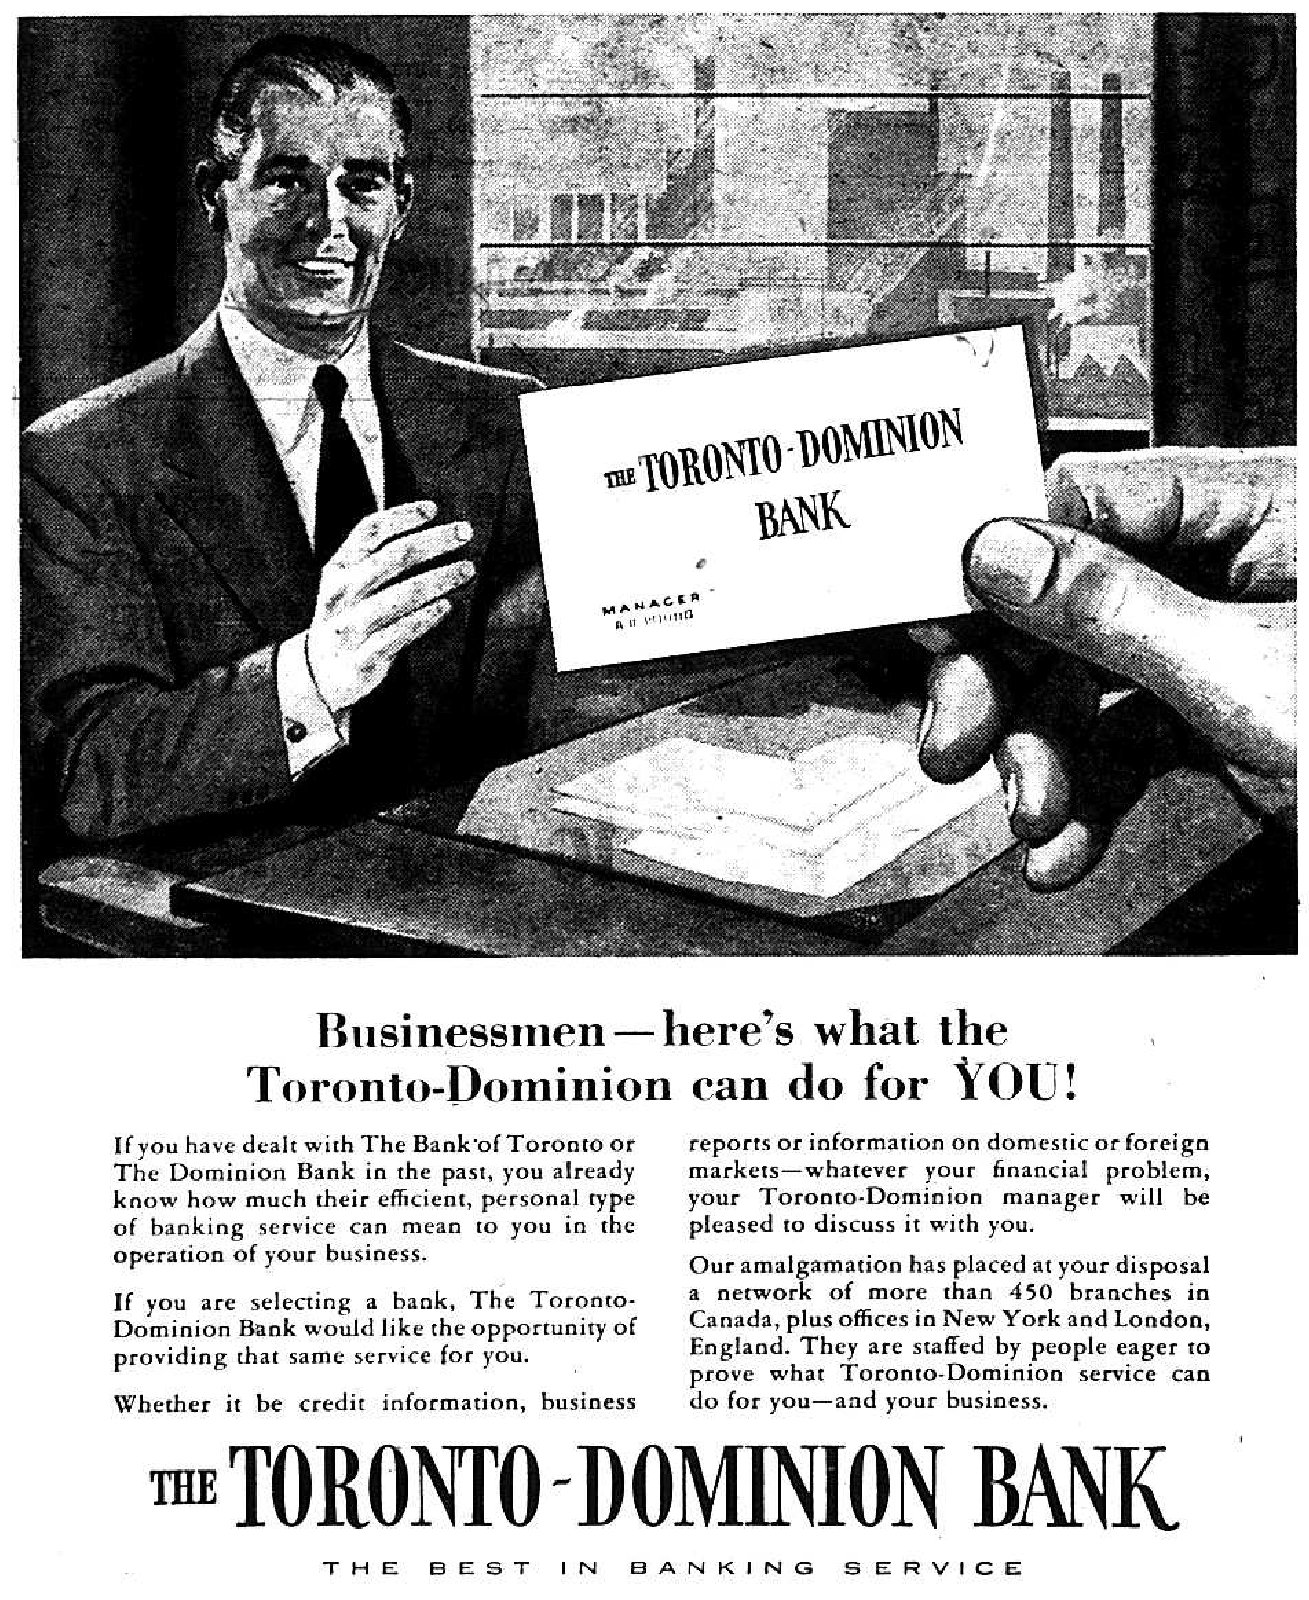 The Toronto-Dominion Bank Advertisement, 1955